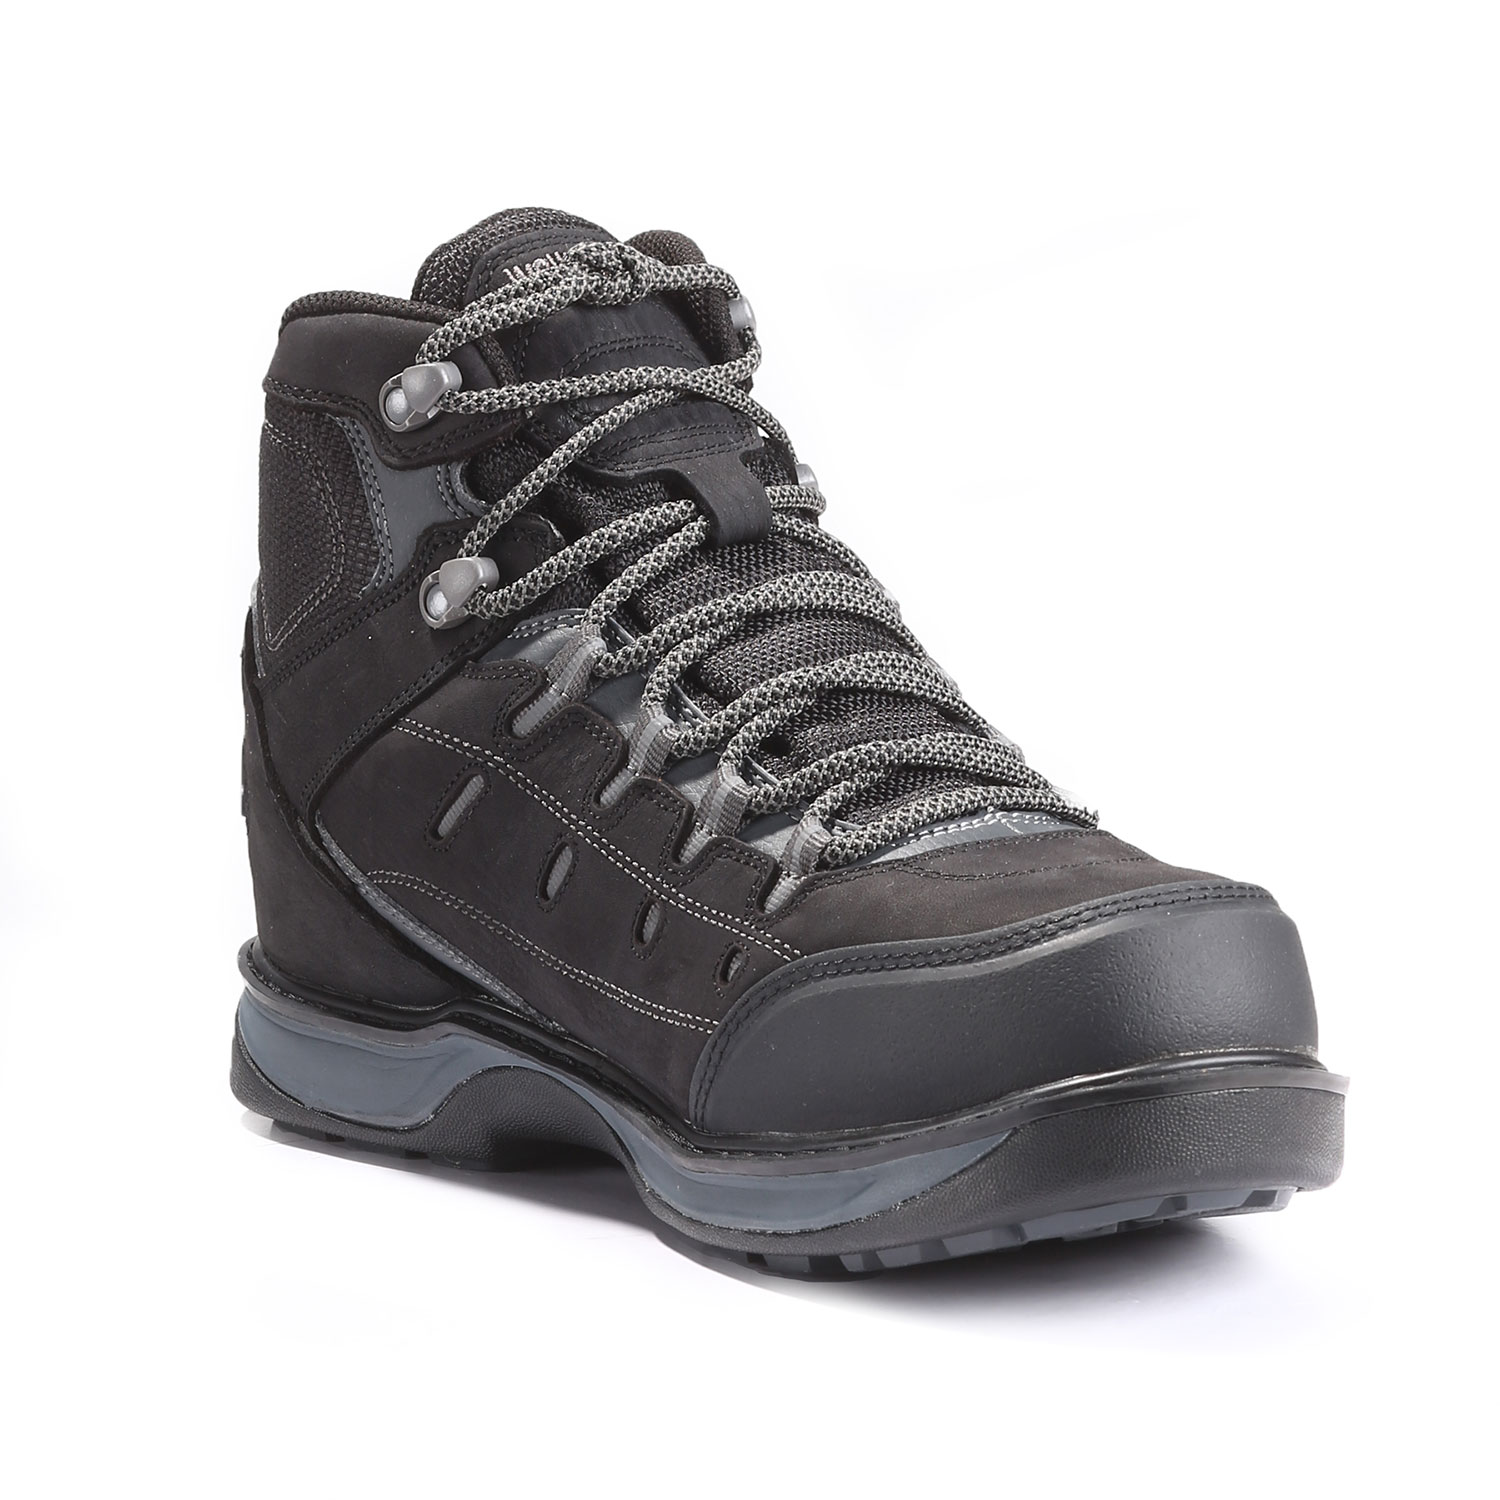 Wolverine Edge LX Waterproof Composite Toe Boot